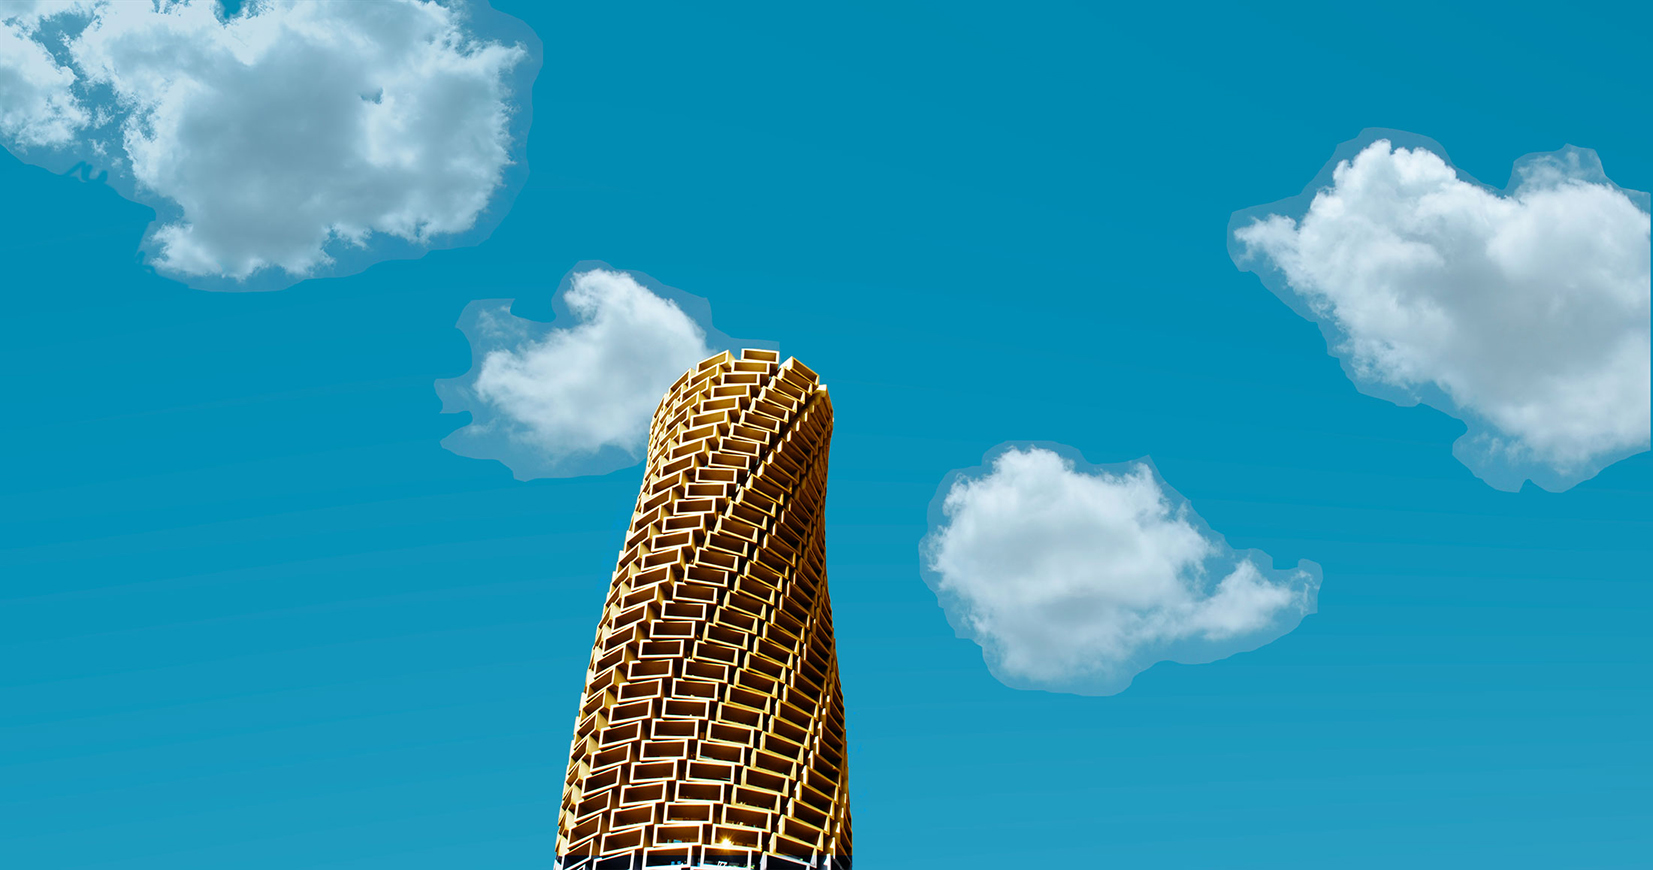 Monument for clouds